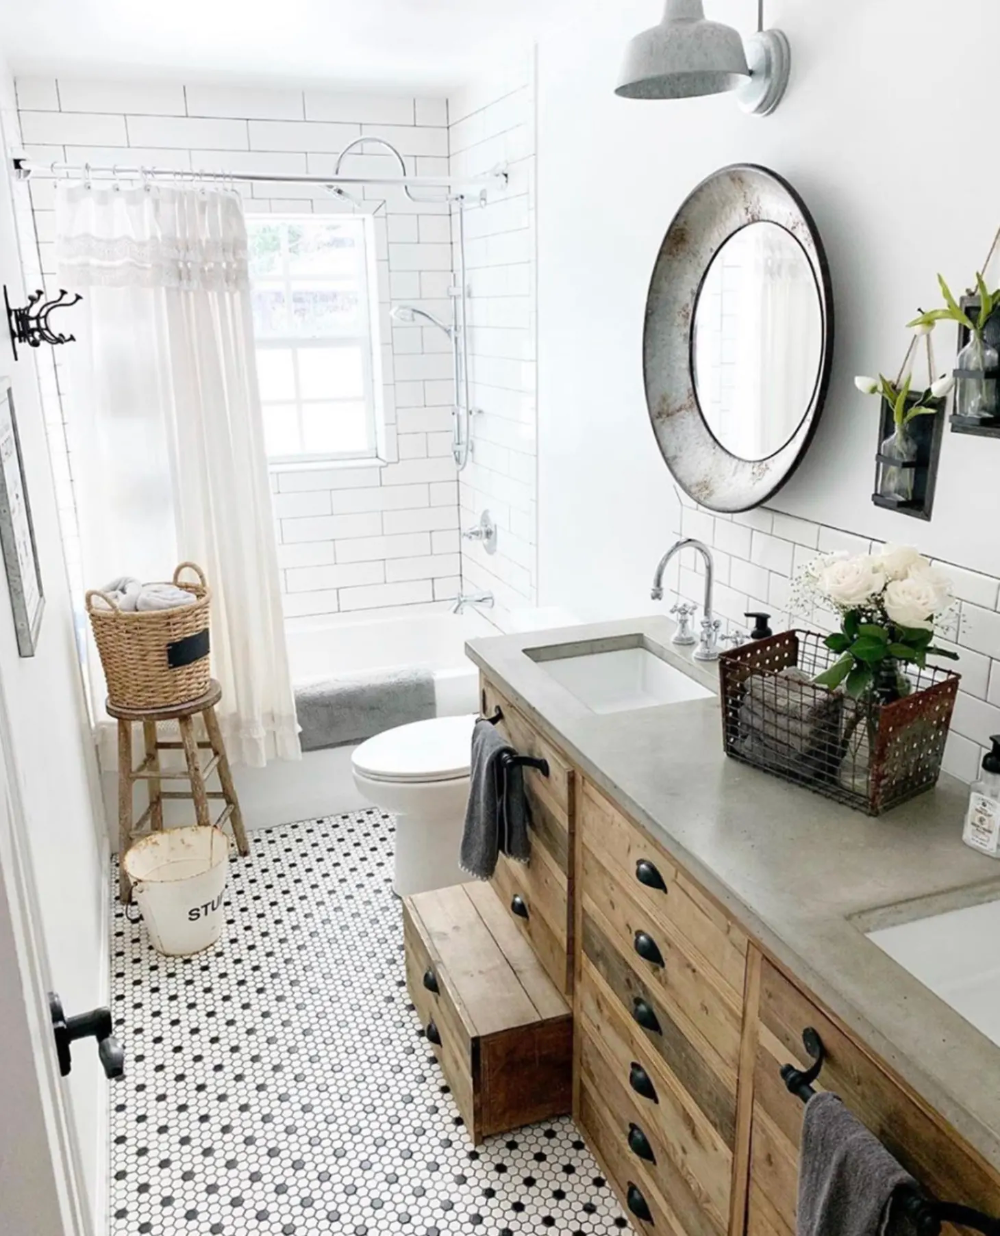 You'll Swoon Over These 20 Sweet Spaces Featuring